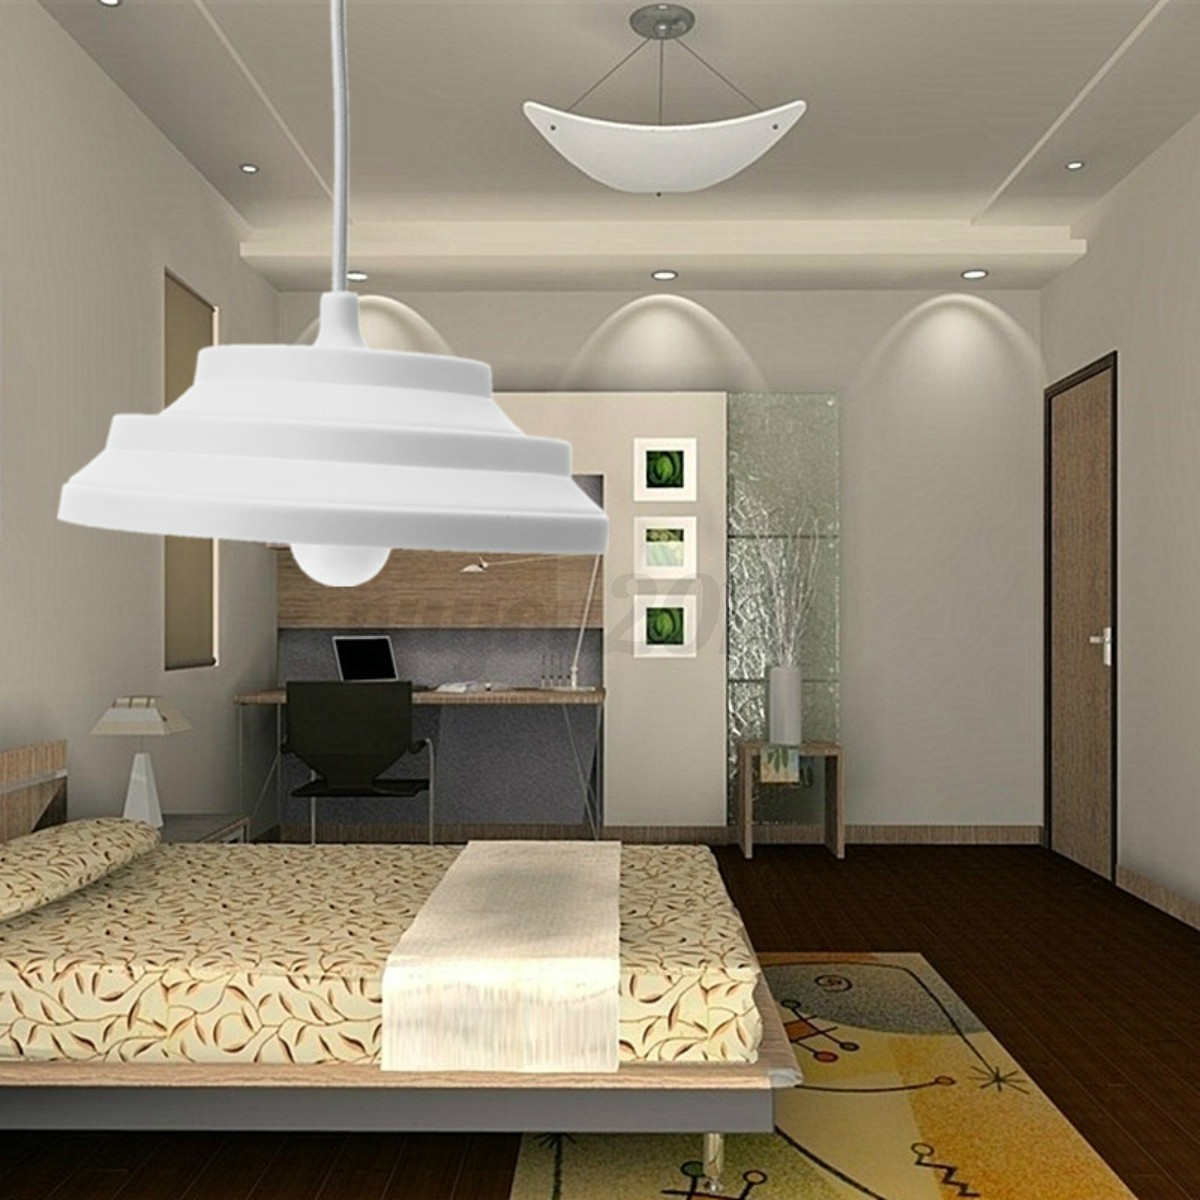 e27 abat jour silicone douille pendentif plafond lampe ampoule edison diy d cor ebay. Black Bedroom Furniture Sets. Home Design Ideas